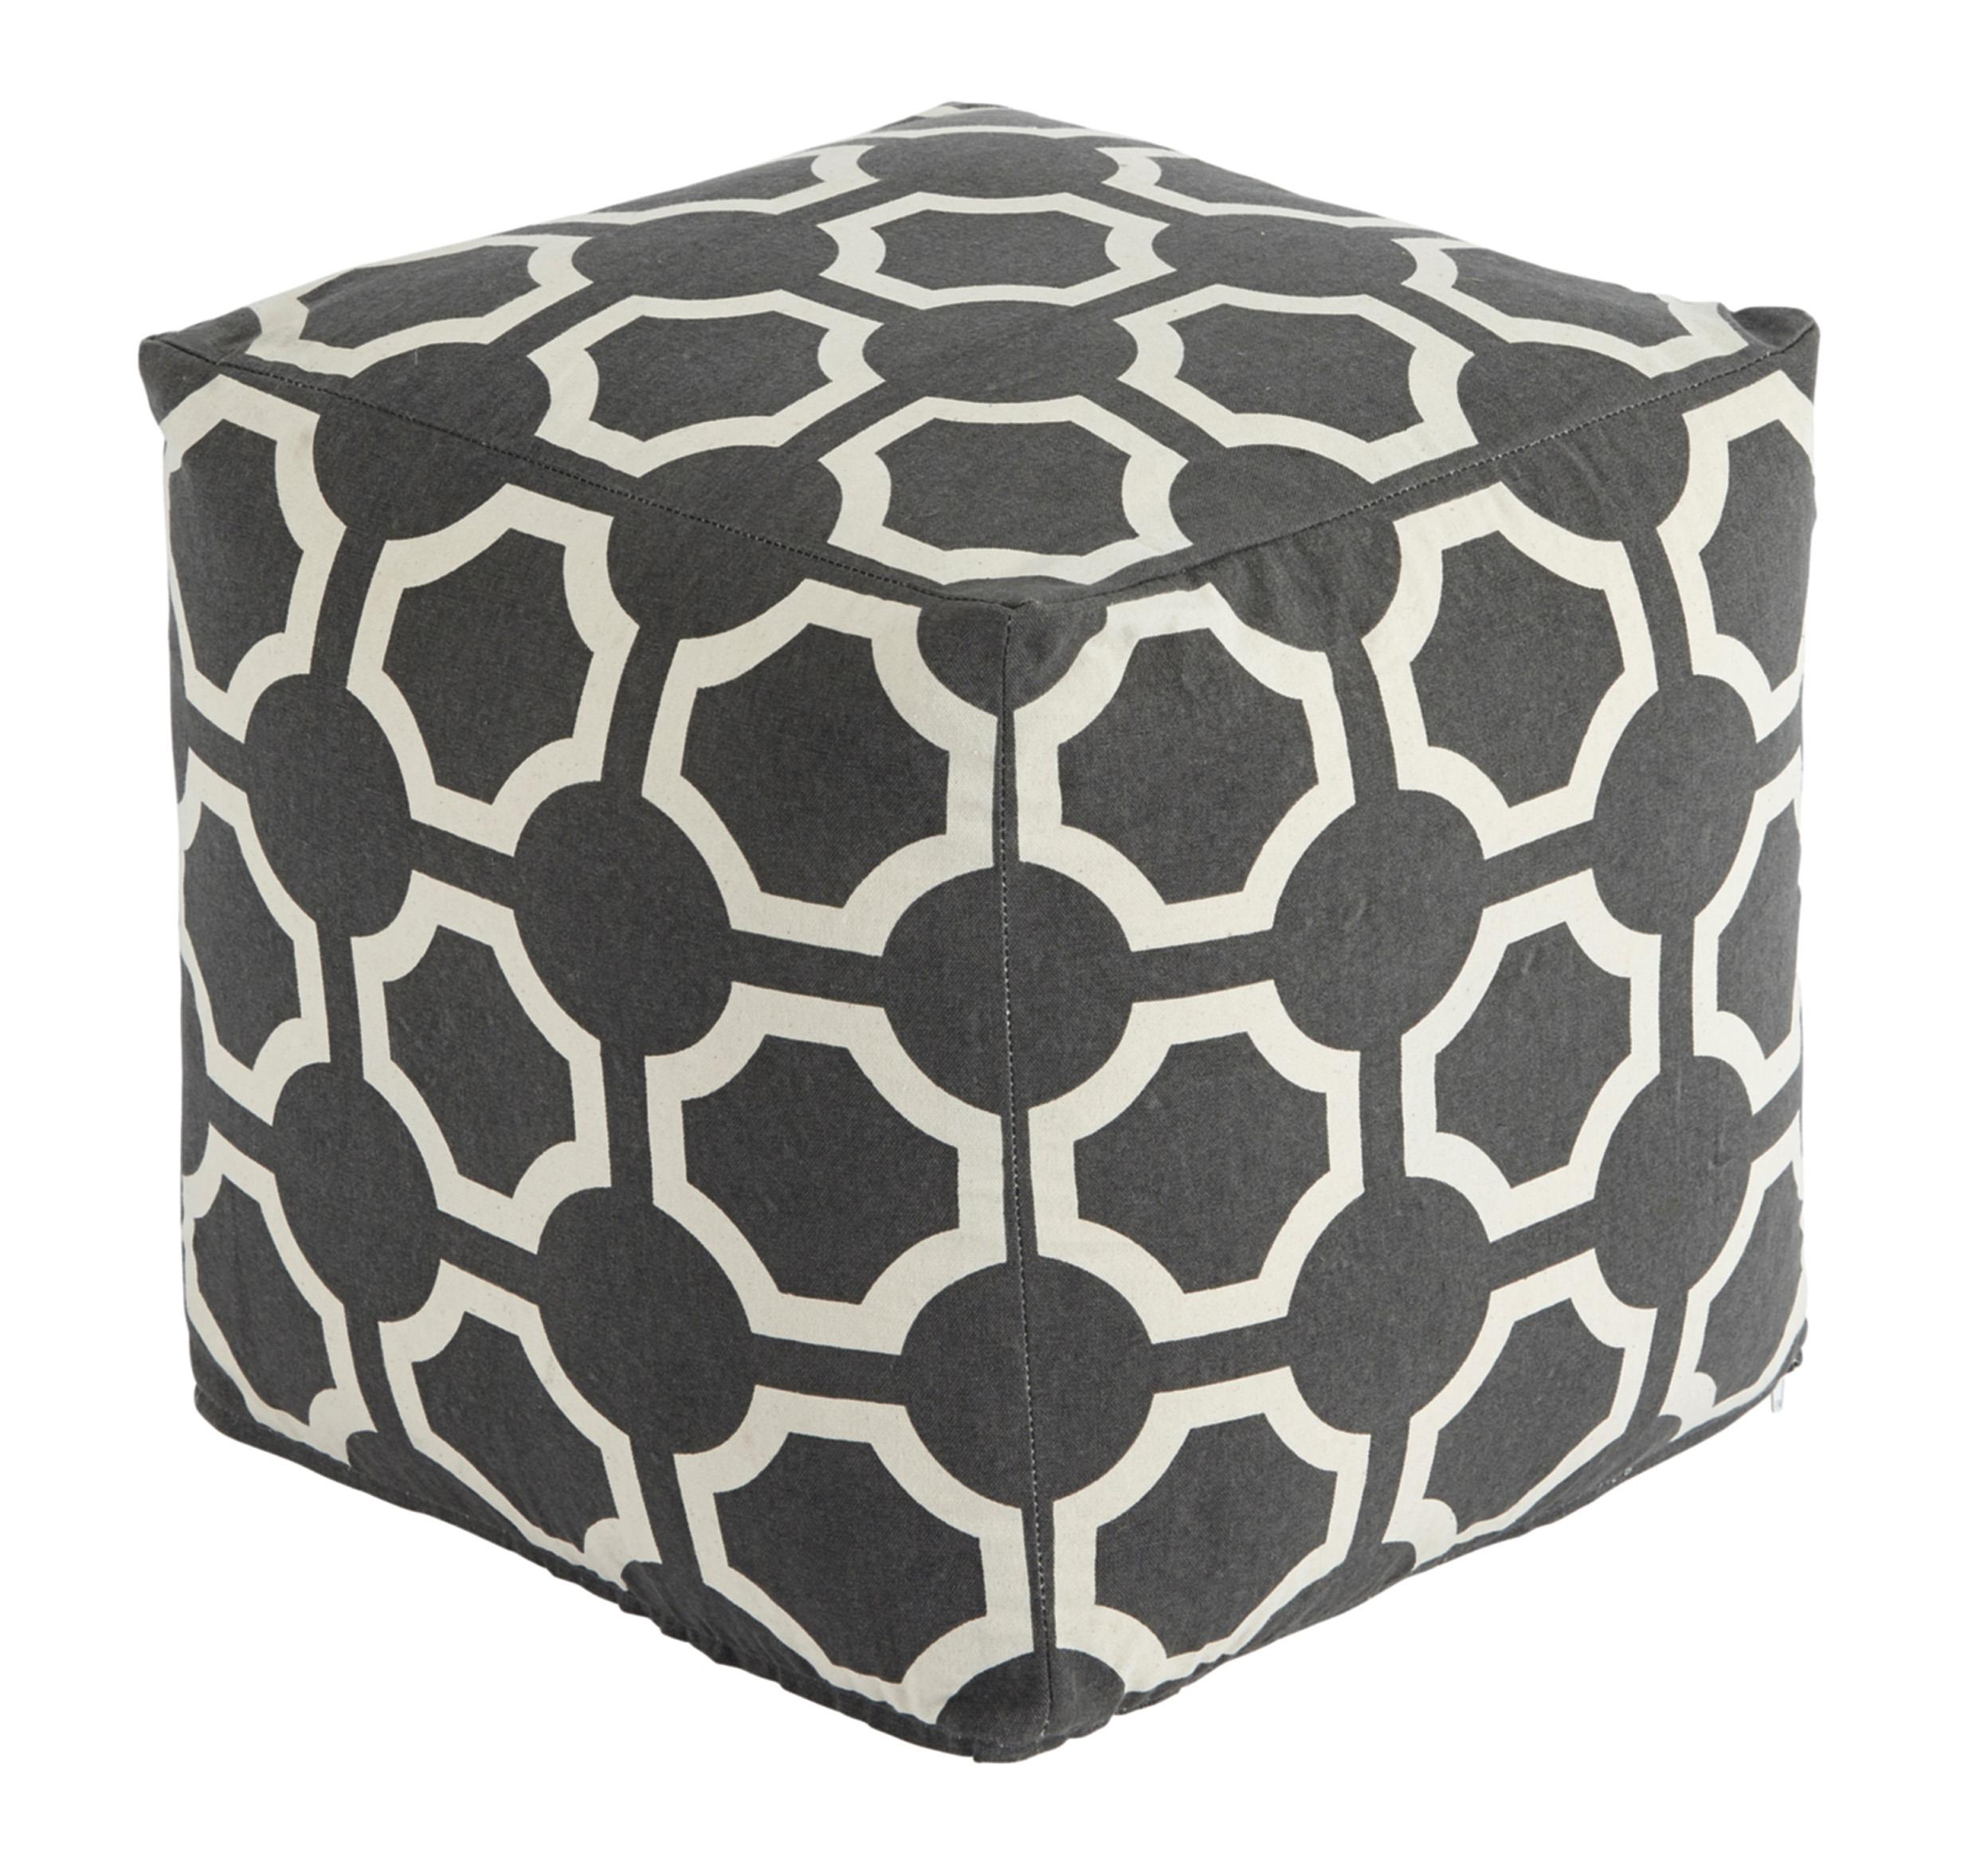 Signature Design by Ashley Poufs Geometric - Gray Pouf - Item Number: A1000424